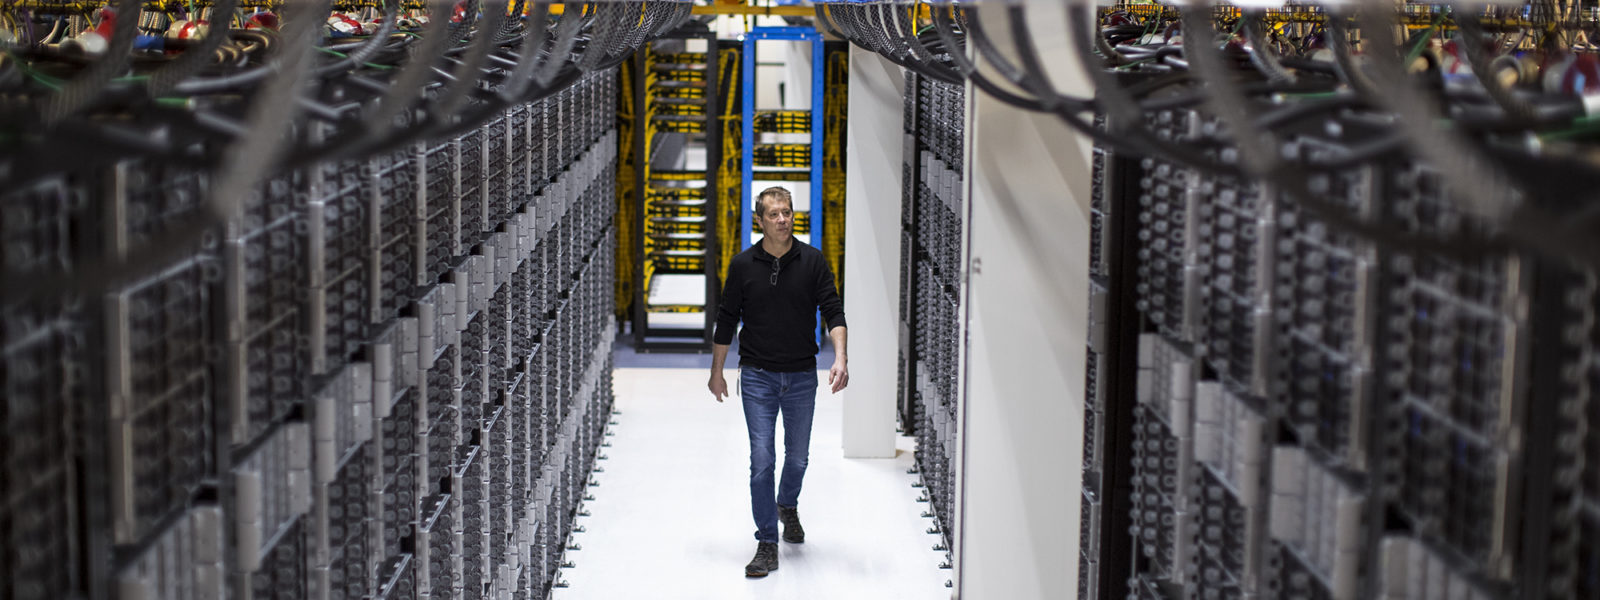 image of a man walking through a State-of-the-art facility uses eco-friendly solutions such as using reclaimed water to cool the data center.